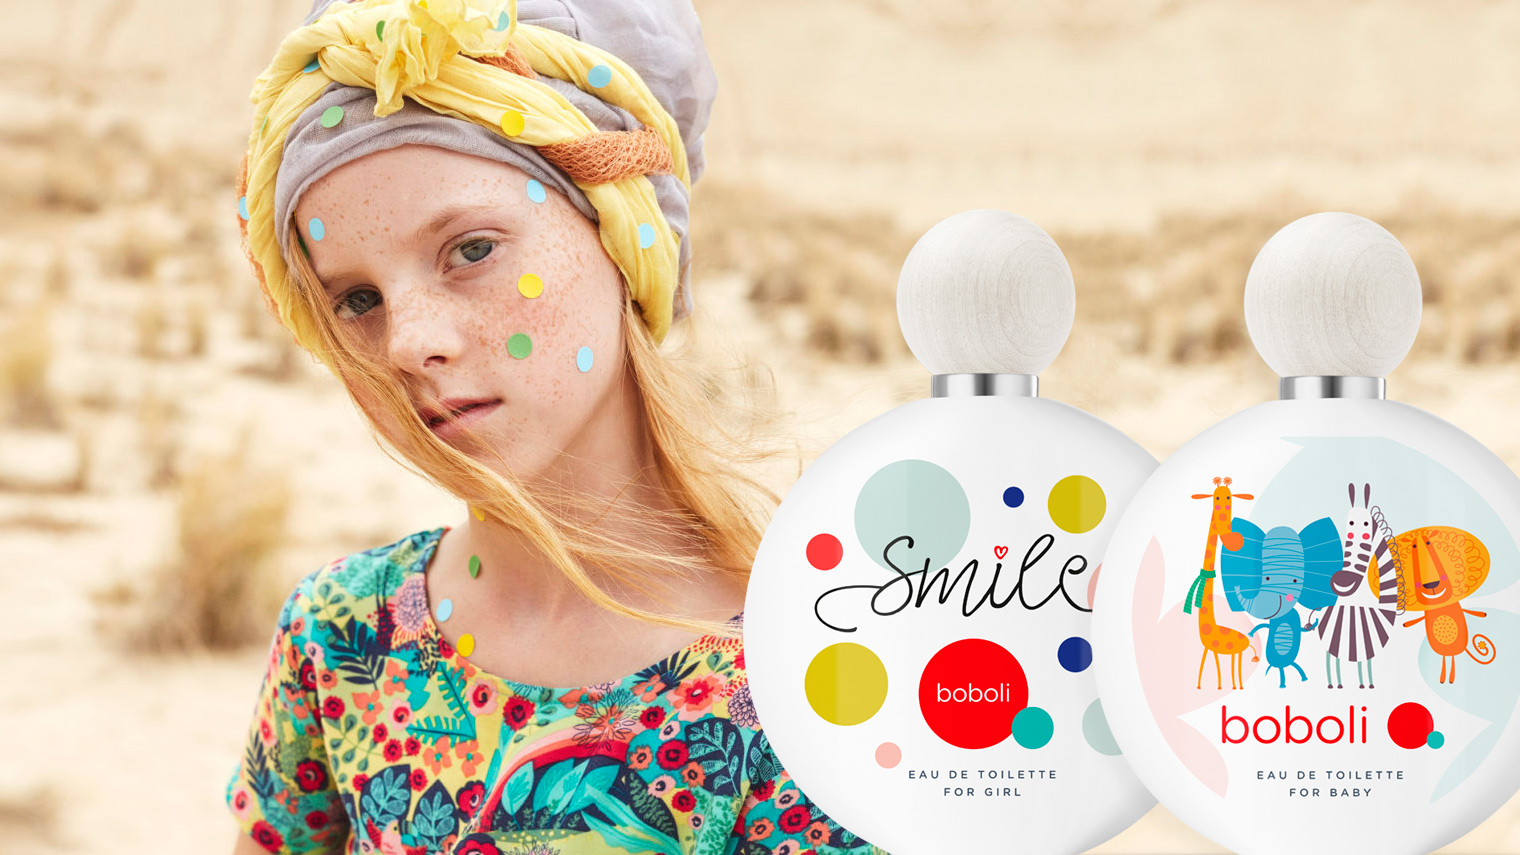 portfolio-marcas-Magasalfa-Boboli-fragrances-fragancias-baby-girl-smile-edt-spray